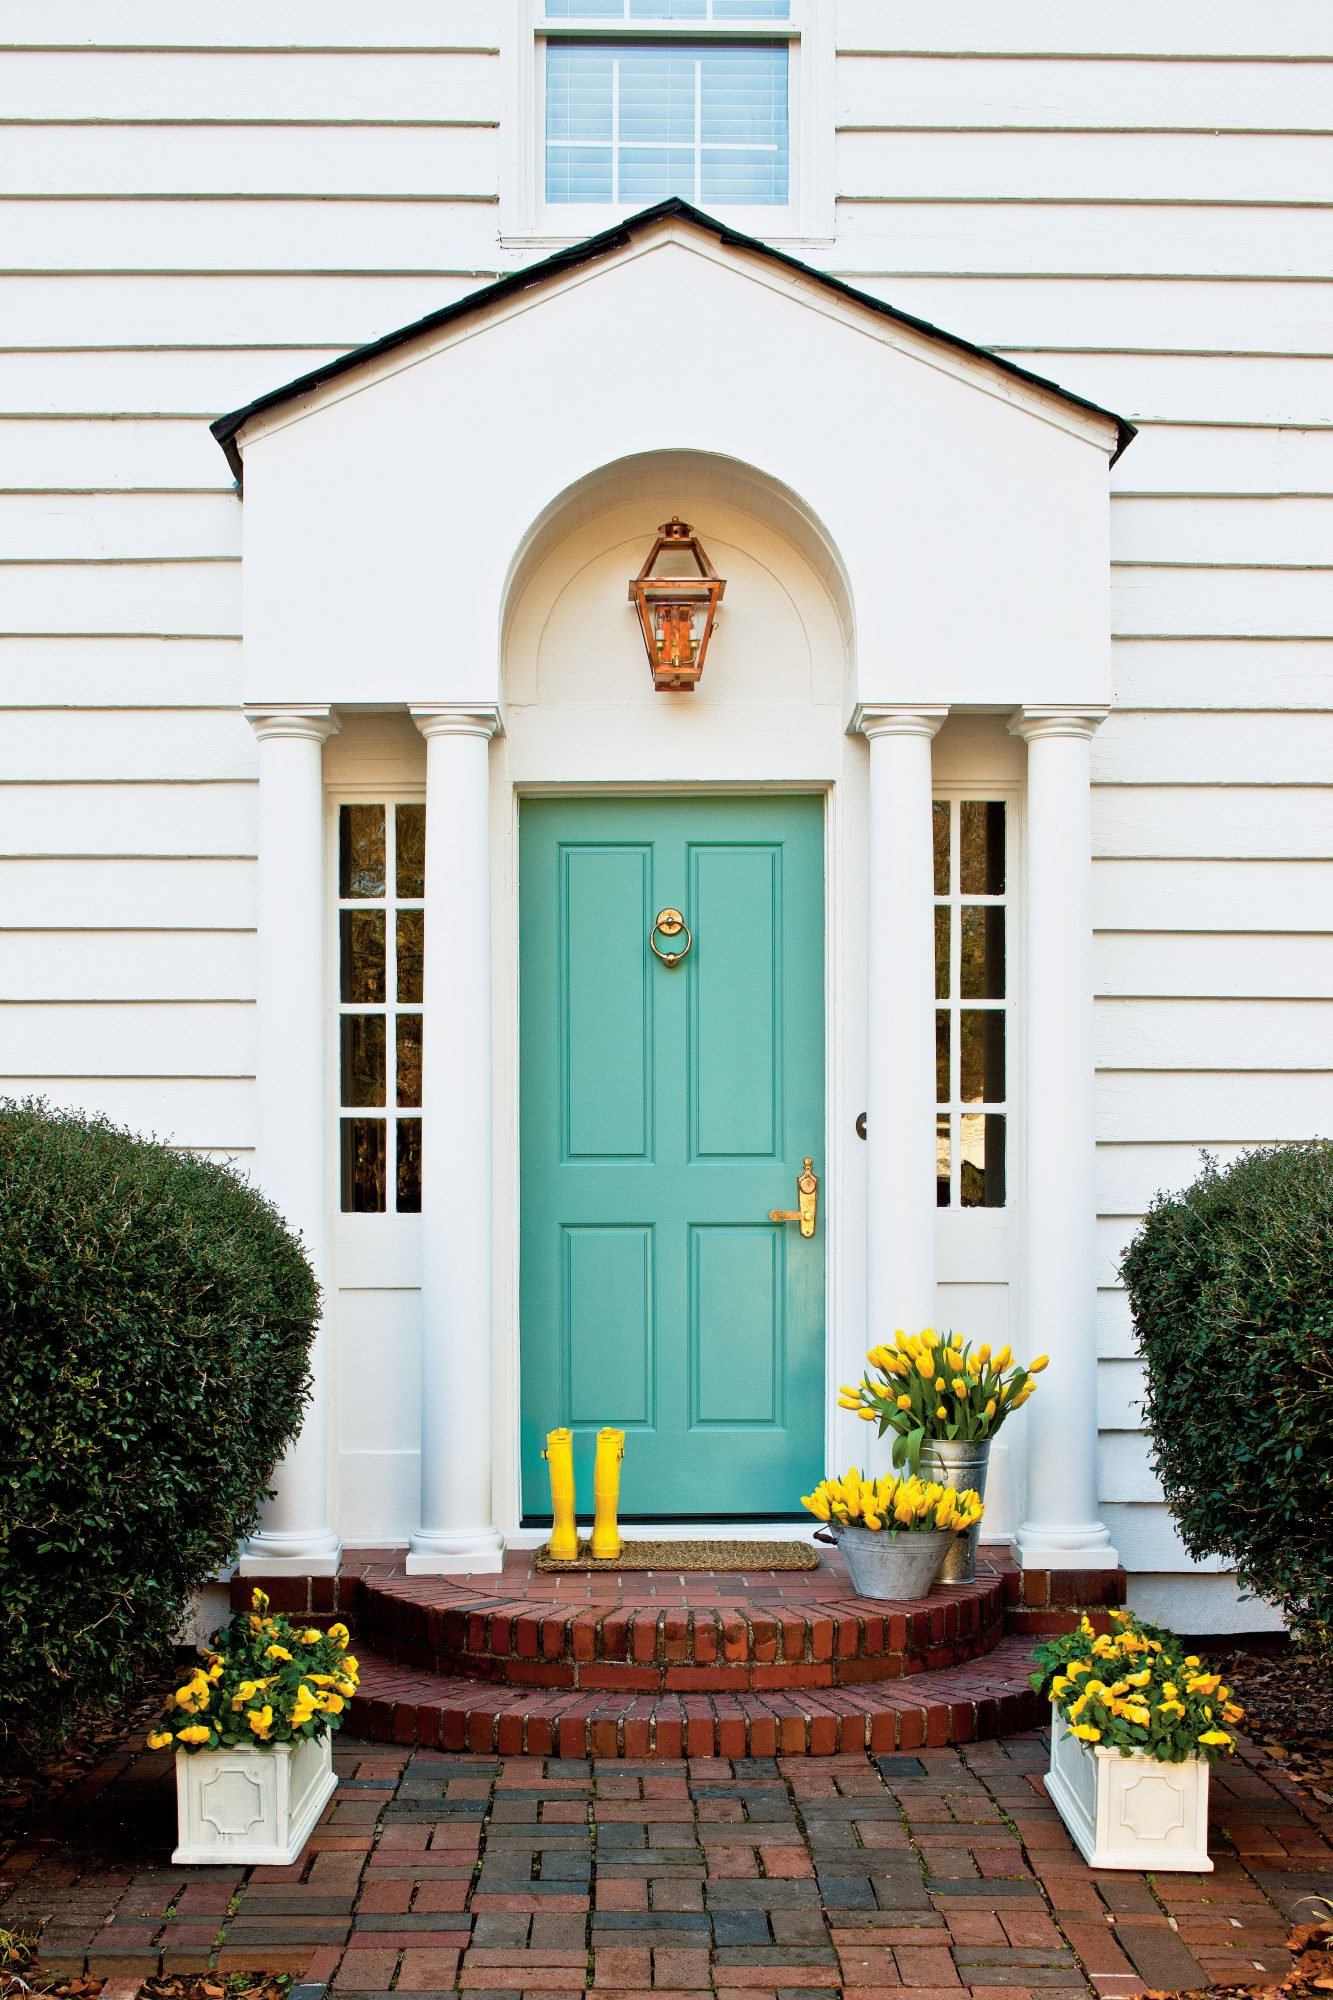 Stylish front door ideas southern living 5 simply stylish front door ideas rubansaba